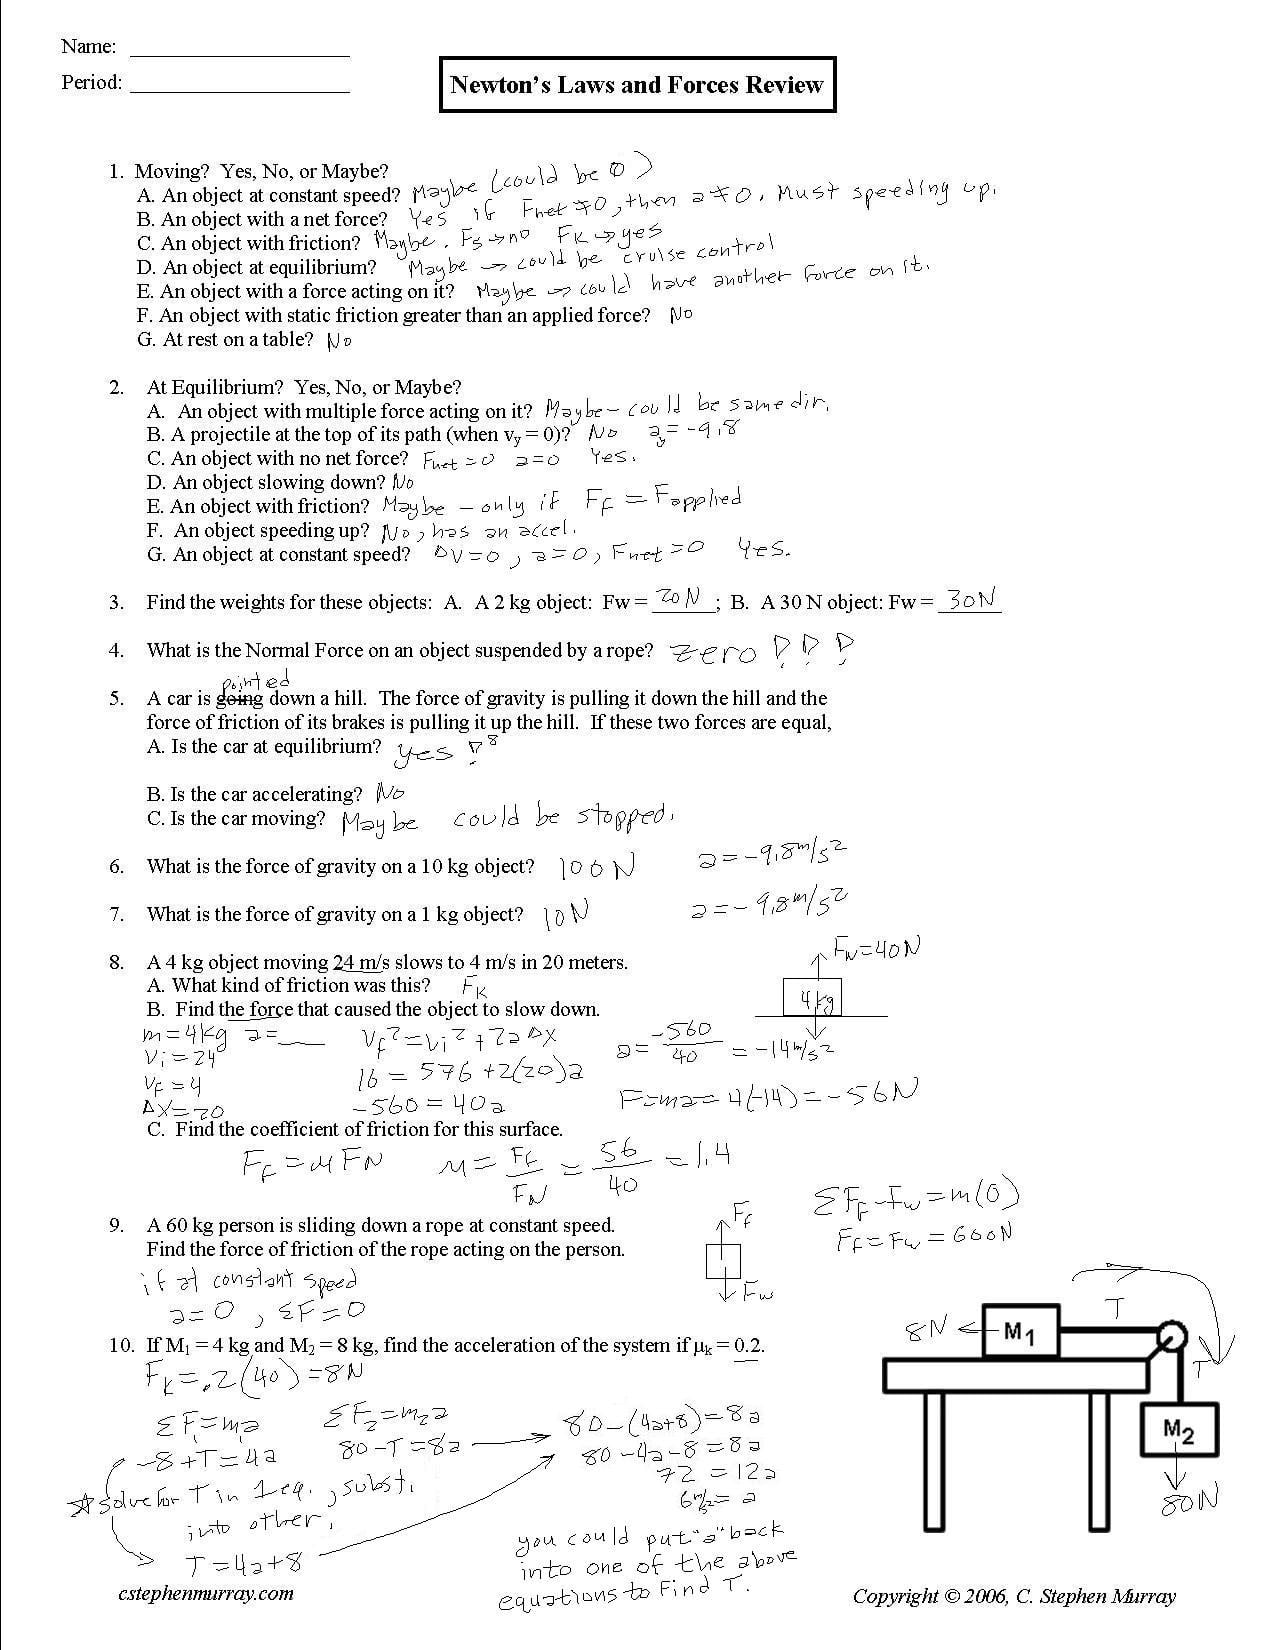 Mr Murray's Website Two Dim Motion For Weight Friction And Equilibrium Worksheet Answers